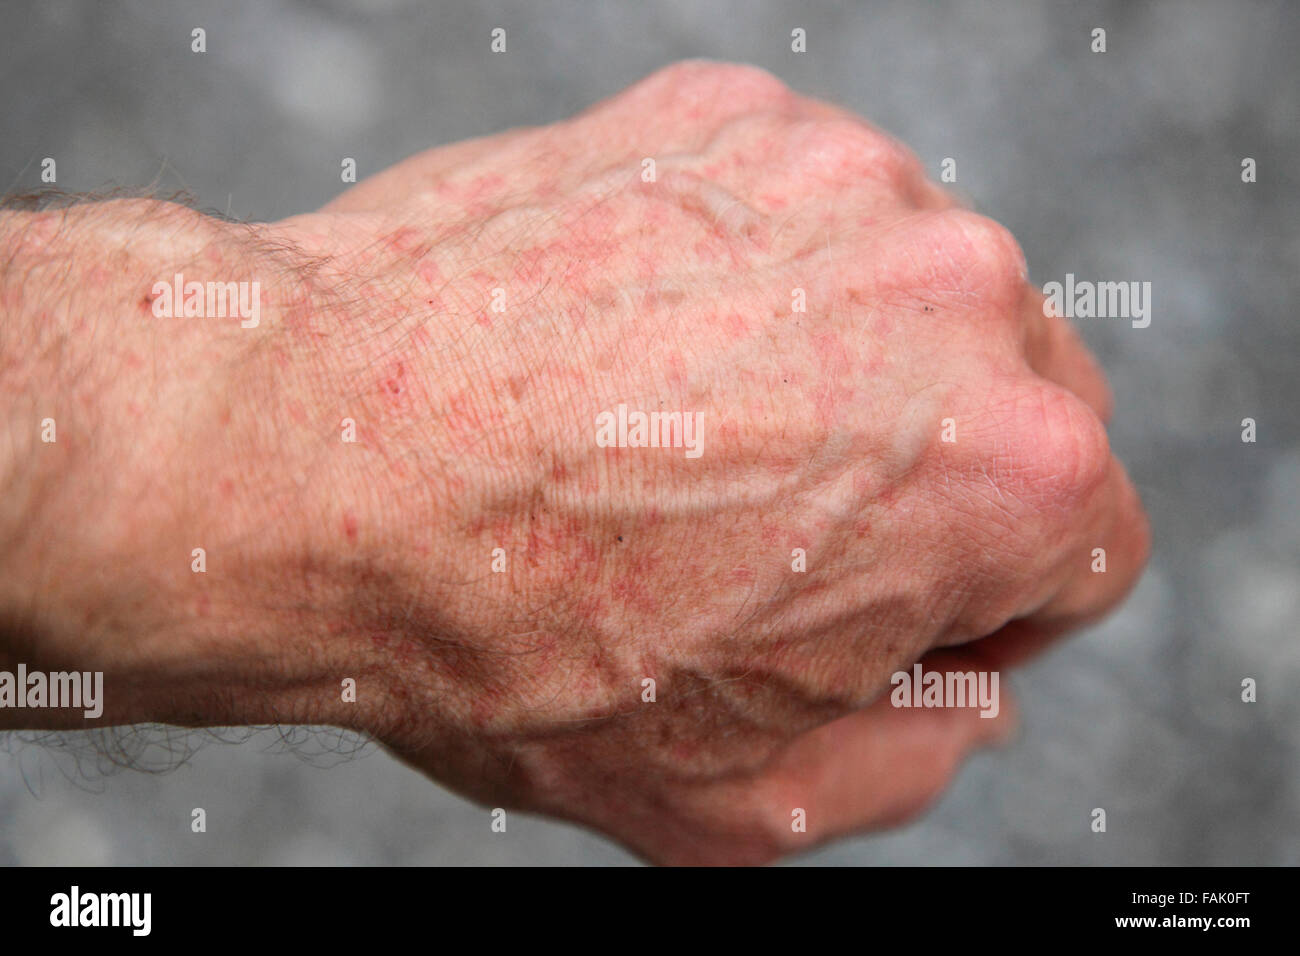 Viele Fotos In Einem Bild Insect Bites Stockfotos And Insect Bites Bilder Alamy